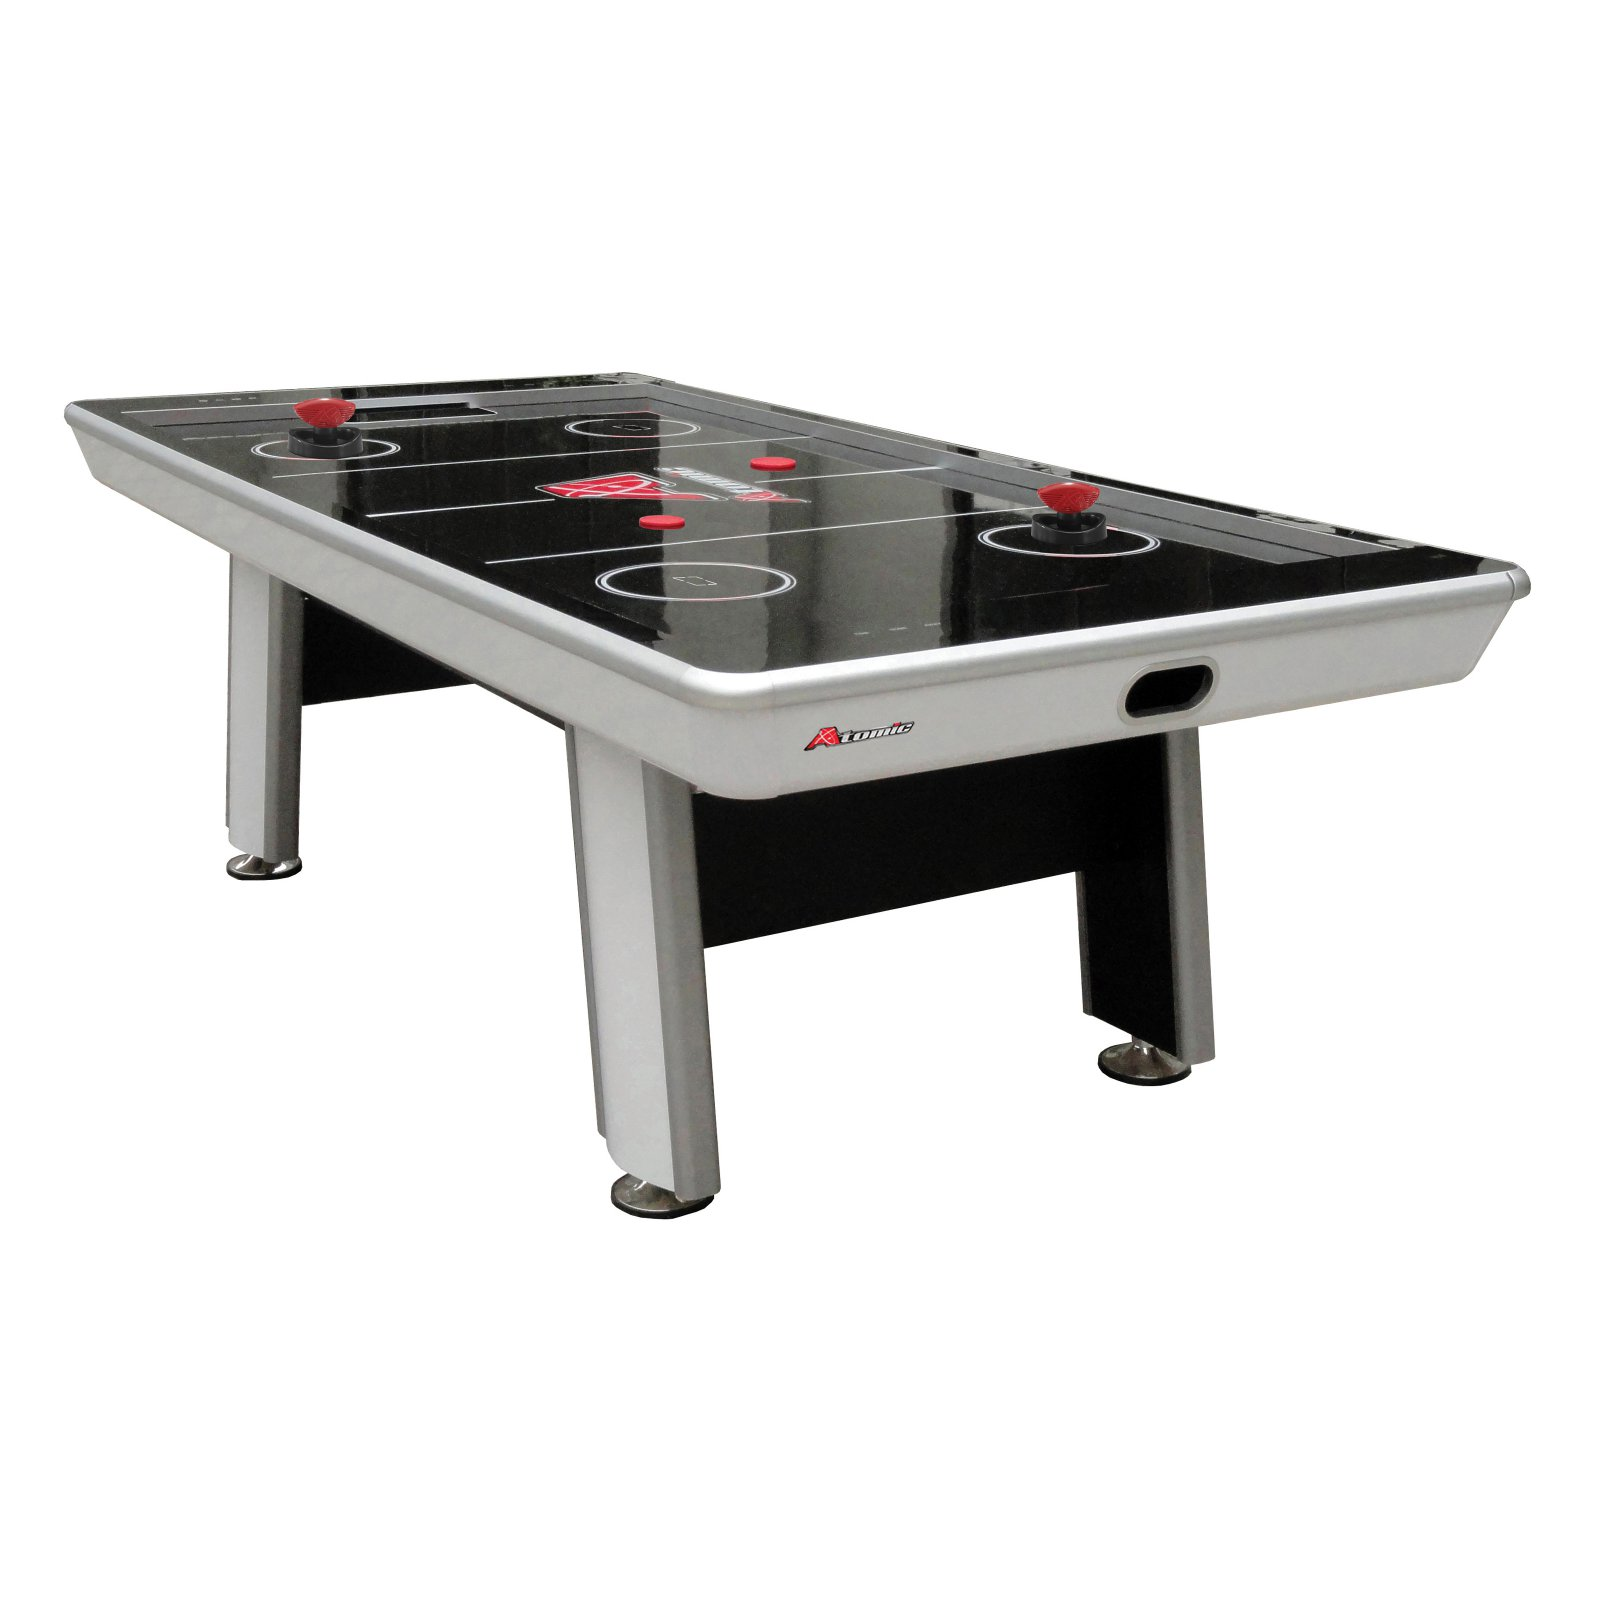 Atomic Avenger 8' Air Hockey Table with Electronic Scoring by Escalade Sports